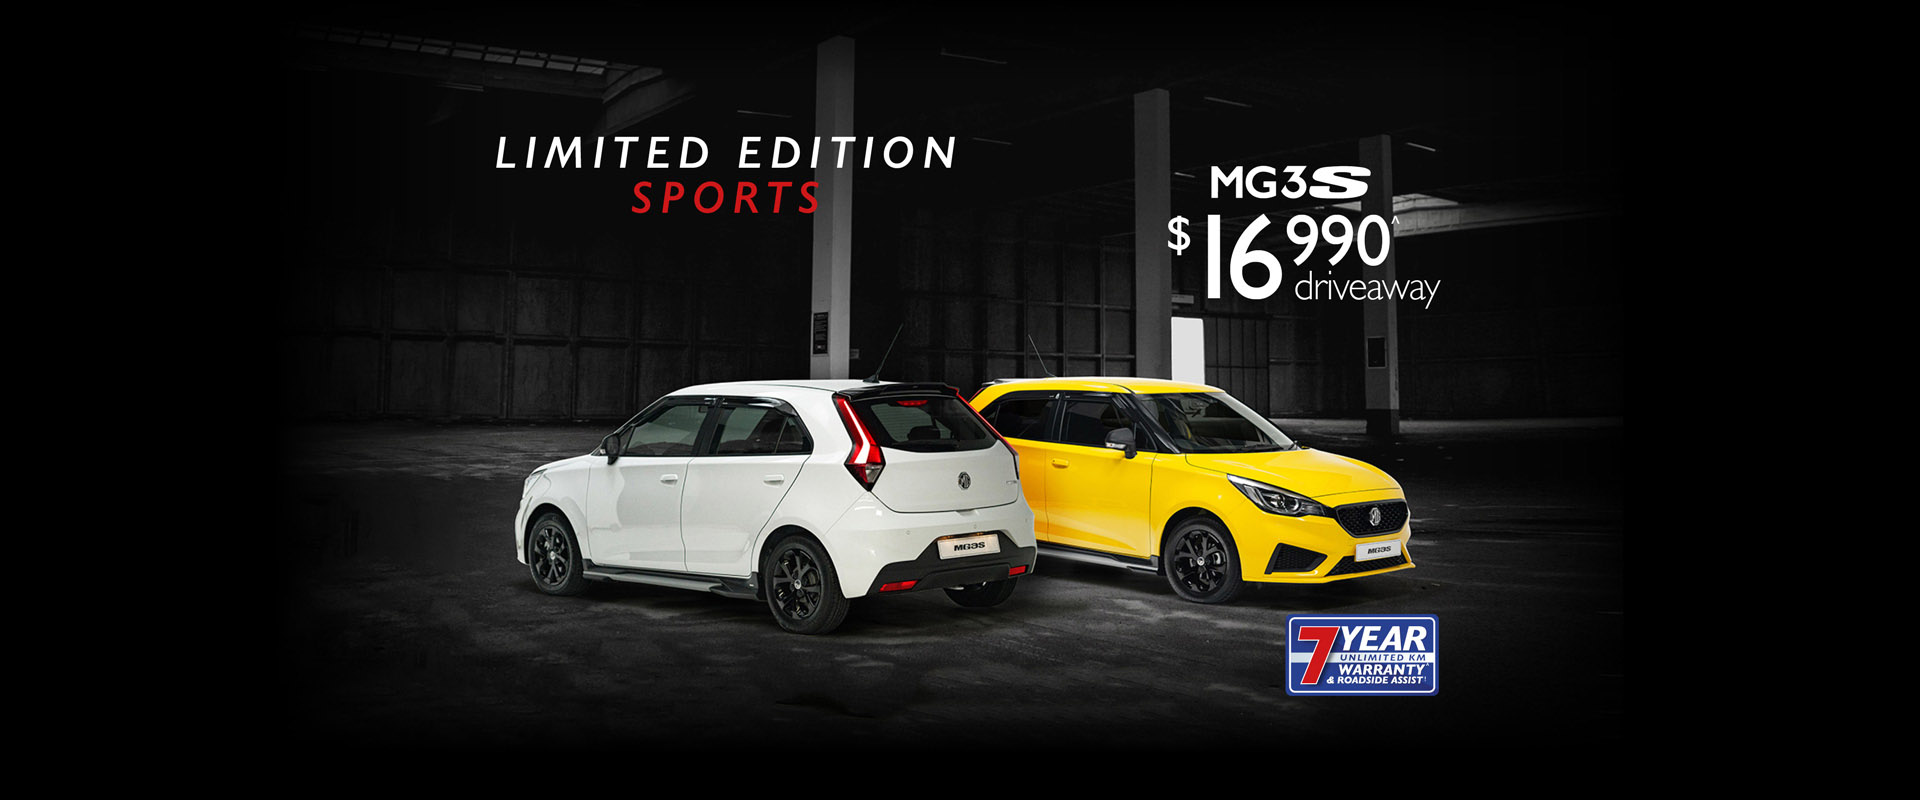 MG3 Sports Limited Edition